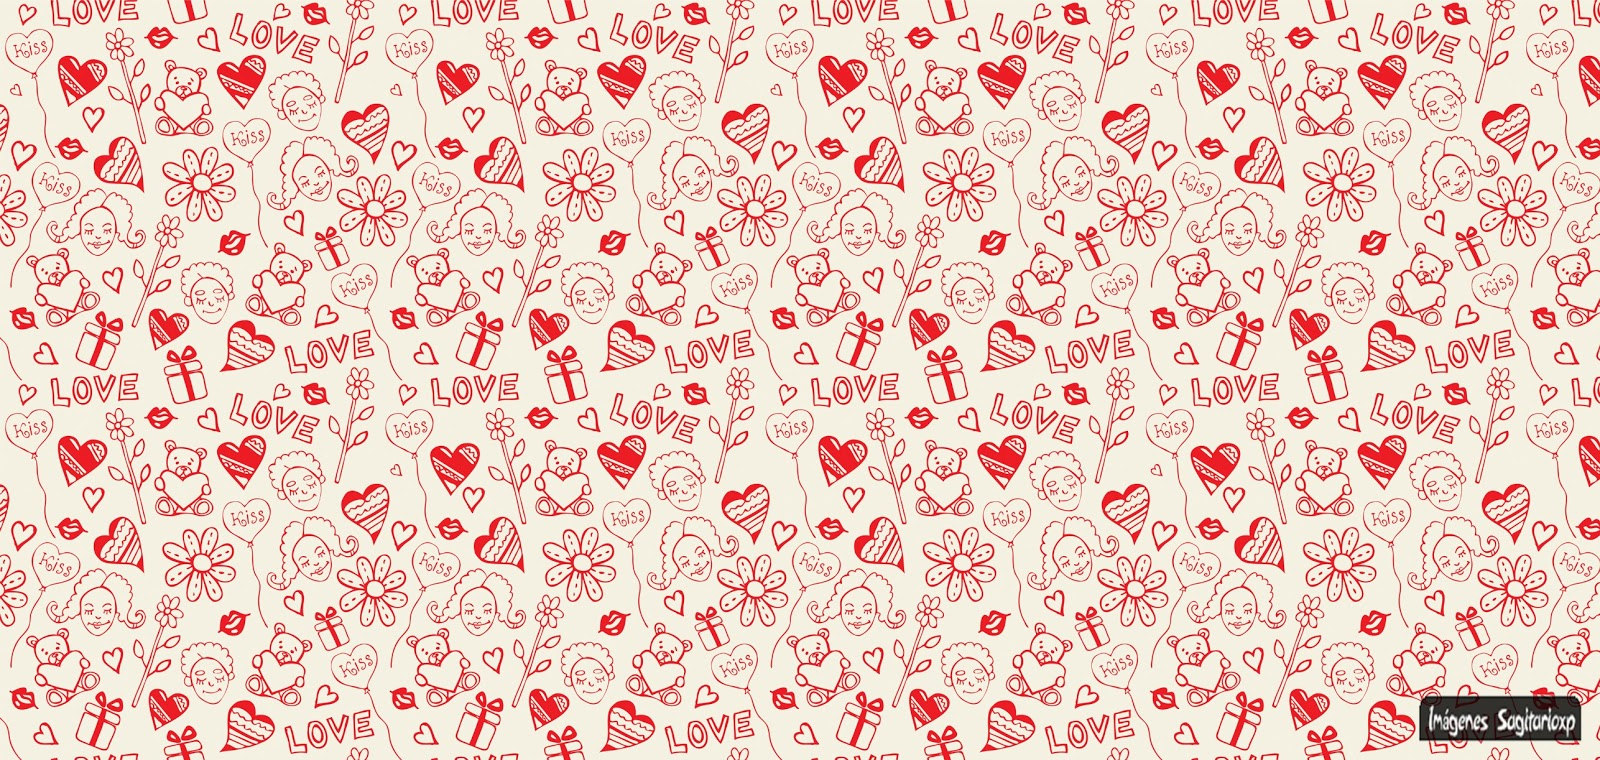 Wallpaper I Love You Vintage : Love Textura Wallpaper Imagenes y Fondos